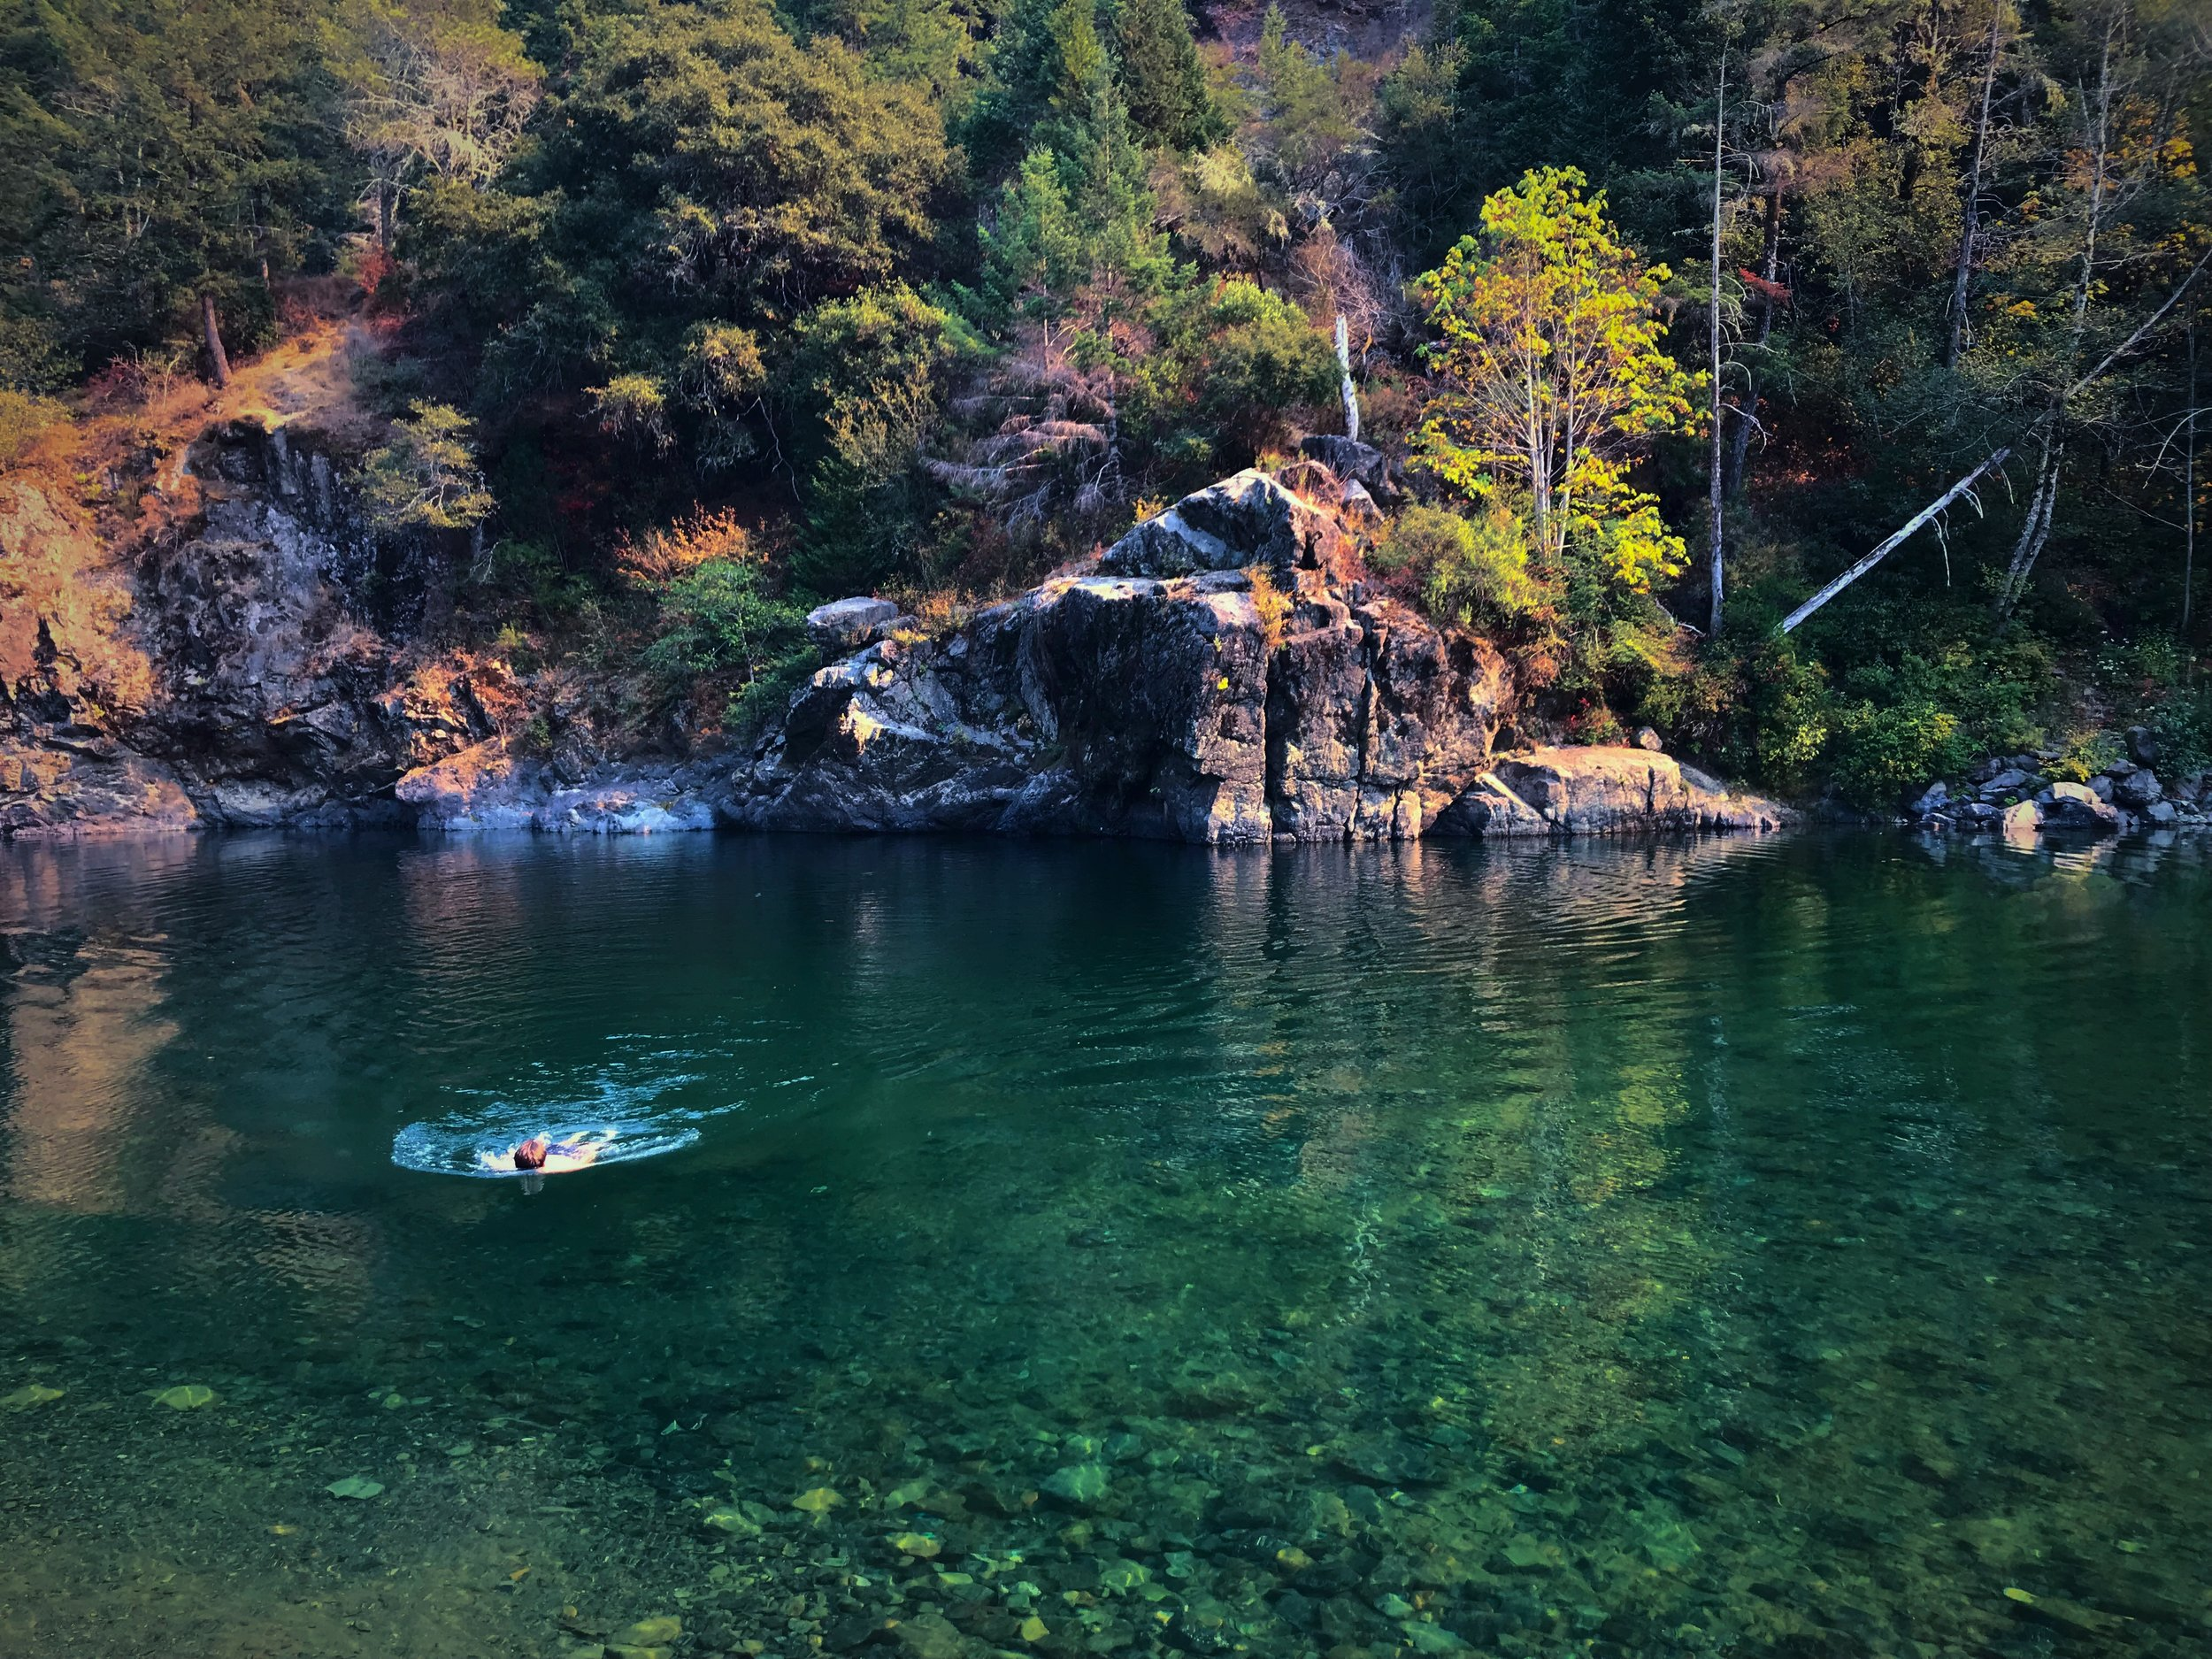 The water in the  Smith River in California  was so cold and clear that we felt really refreshed after swimming here, even though we hadn't showered in a while.